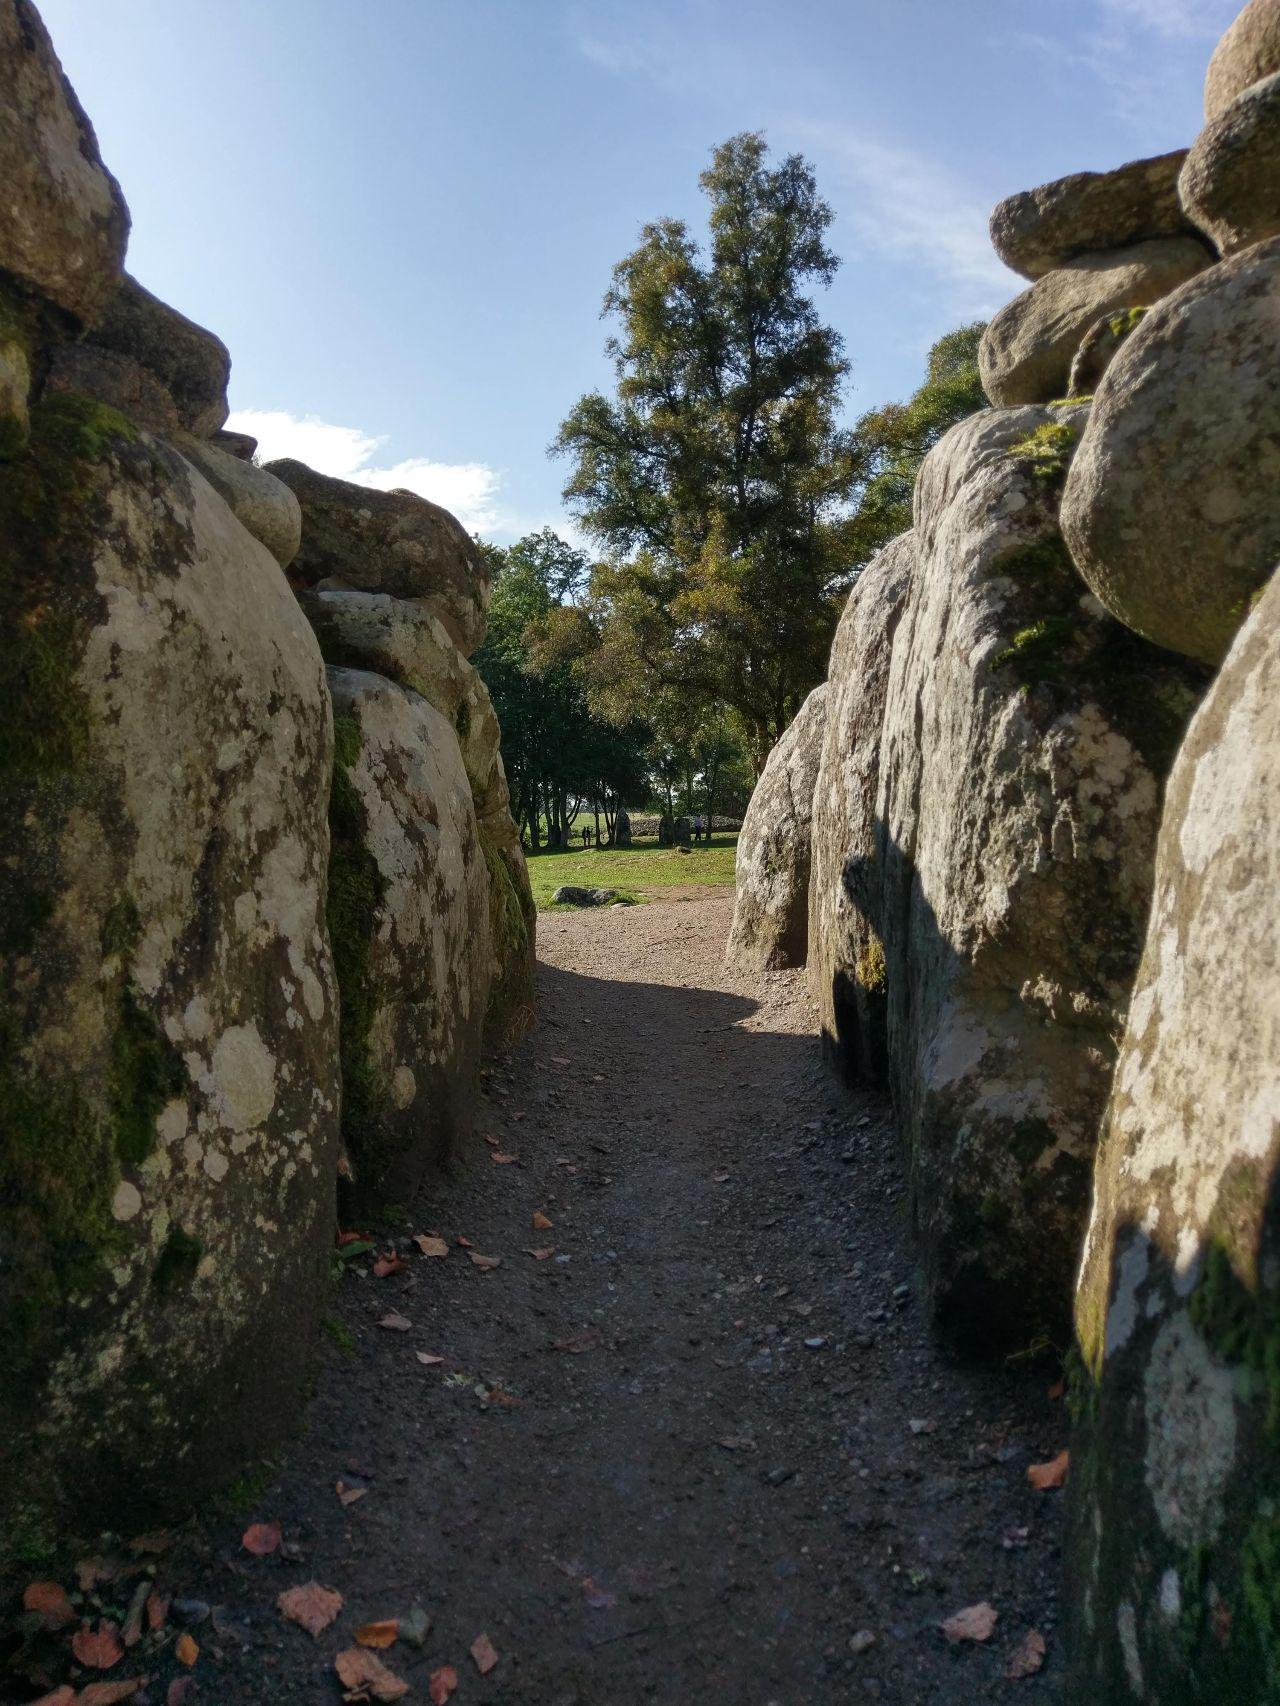 View from inside one of the chambered cairns.